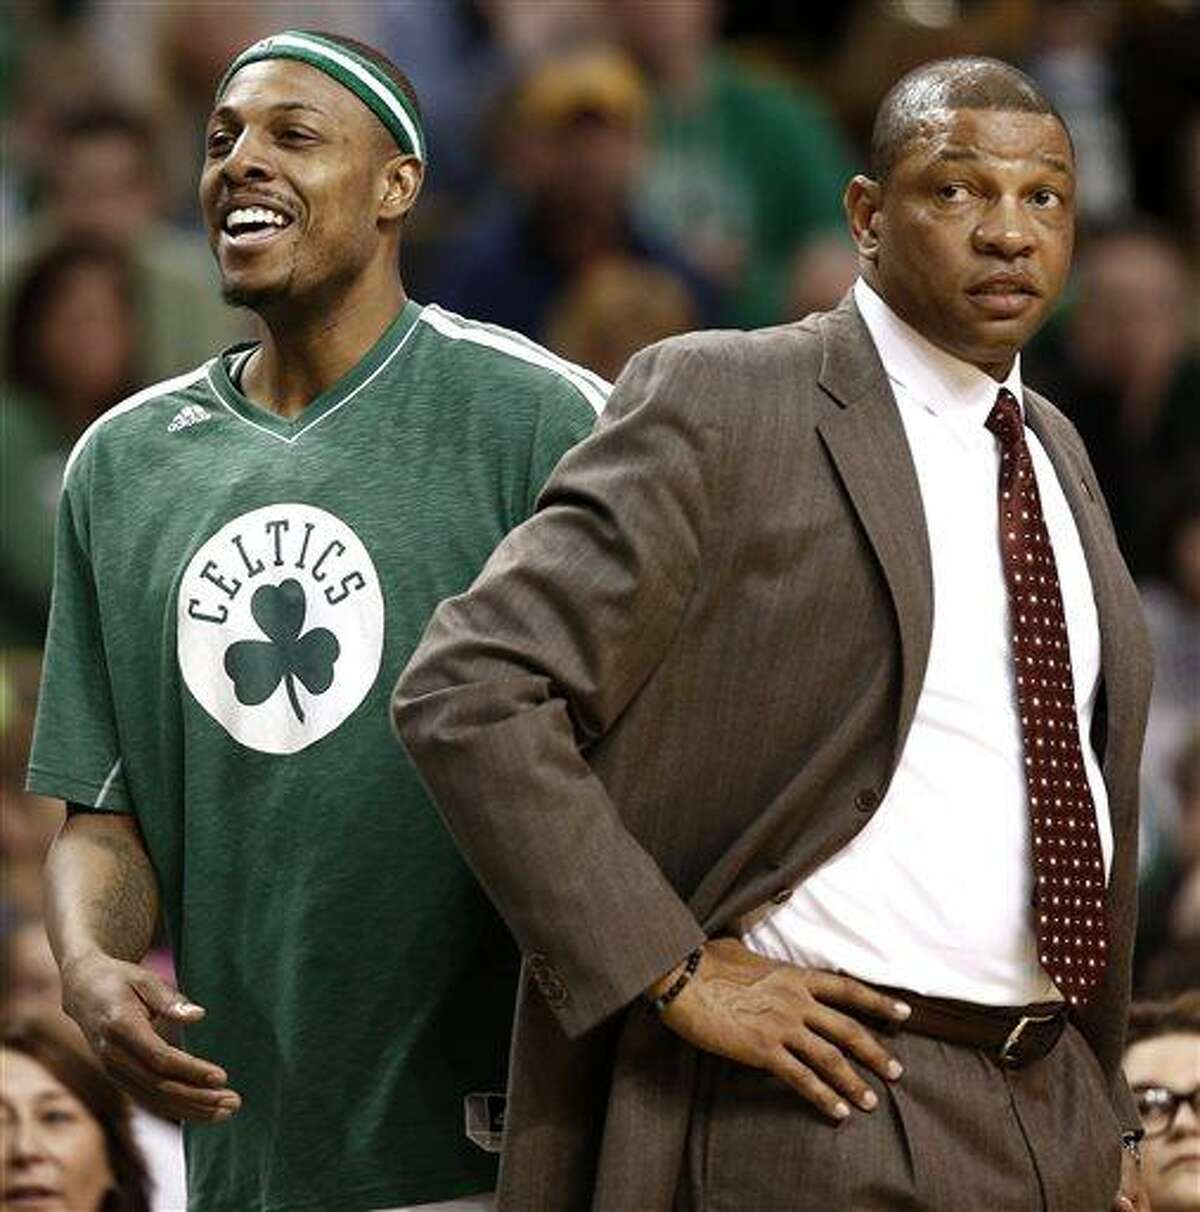 Boston Celtics' Paul Pierce, left, smiles next to head coach Doc Rivers during the fourth quarter of their 107-96 win over the Washington Wizards in an NBA basketball game in Boston, Sunday, April 7, 2013. (AP Photo/Winslow Townson)